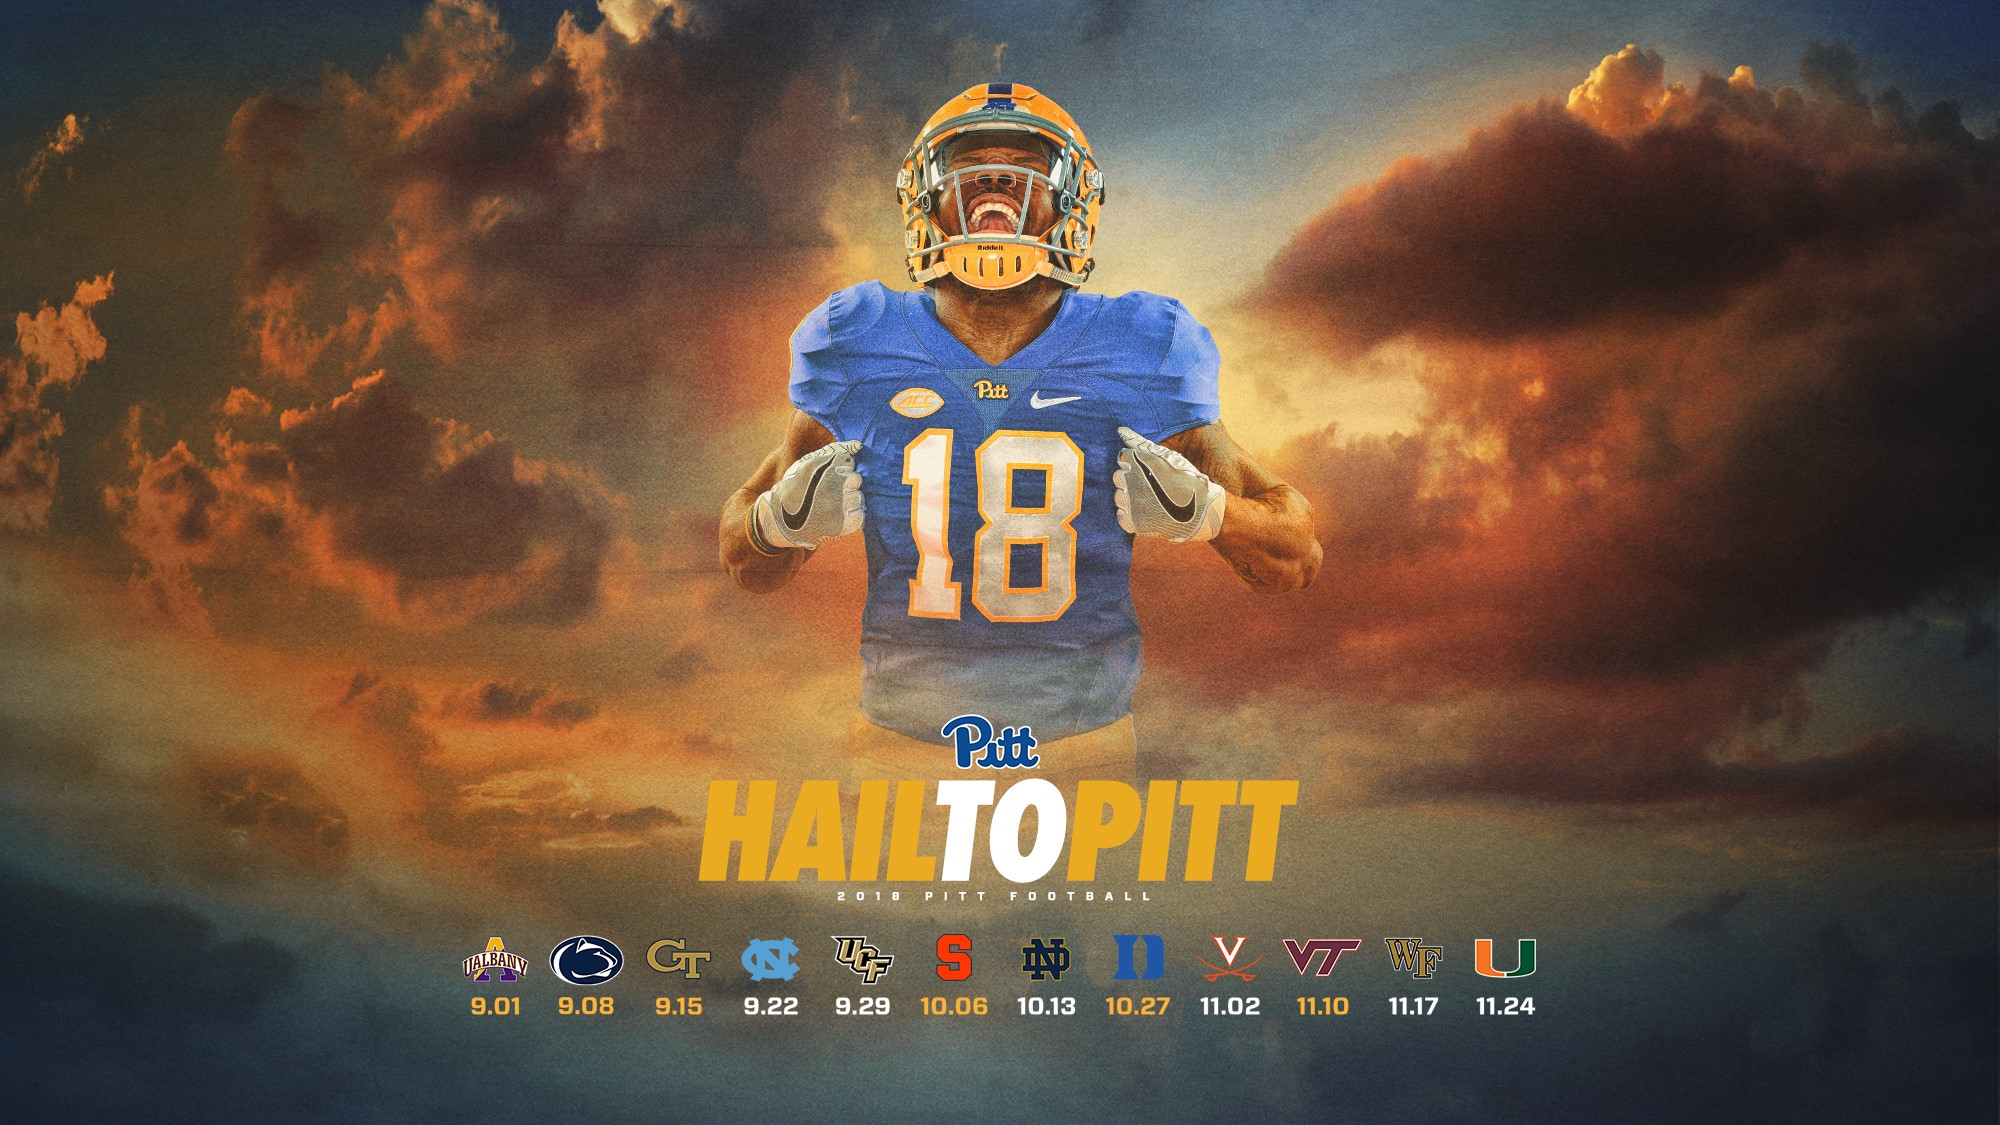 Pitt Announces 2018 Football Schedule University Of Pittsburgh